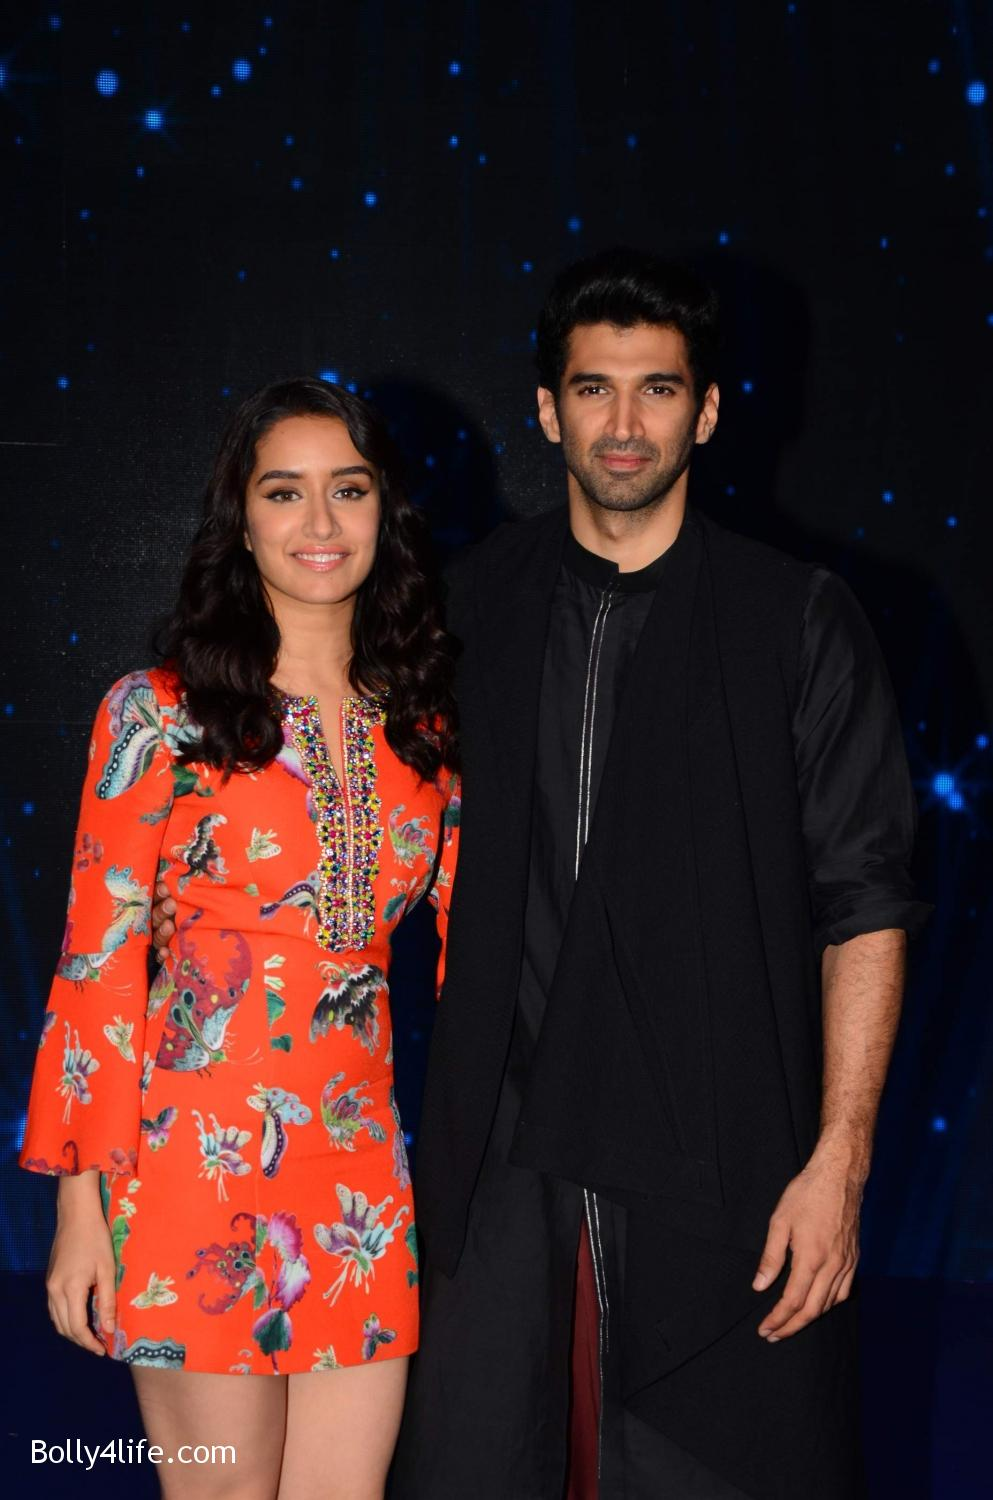 Shraddha-Kapoor-and-Aditya-Roy-Kapur-visit-on-the-set-of-Indian-Idol-Season-9-17.jpg